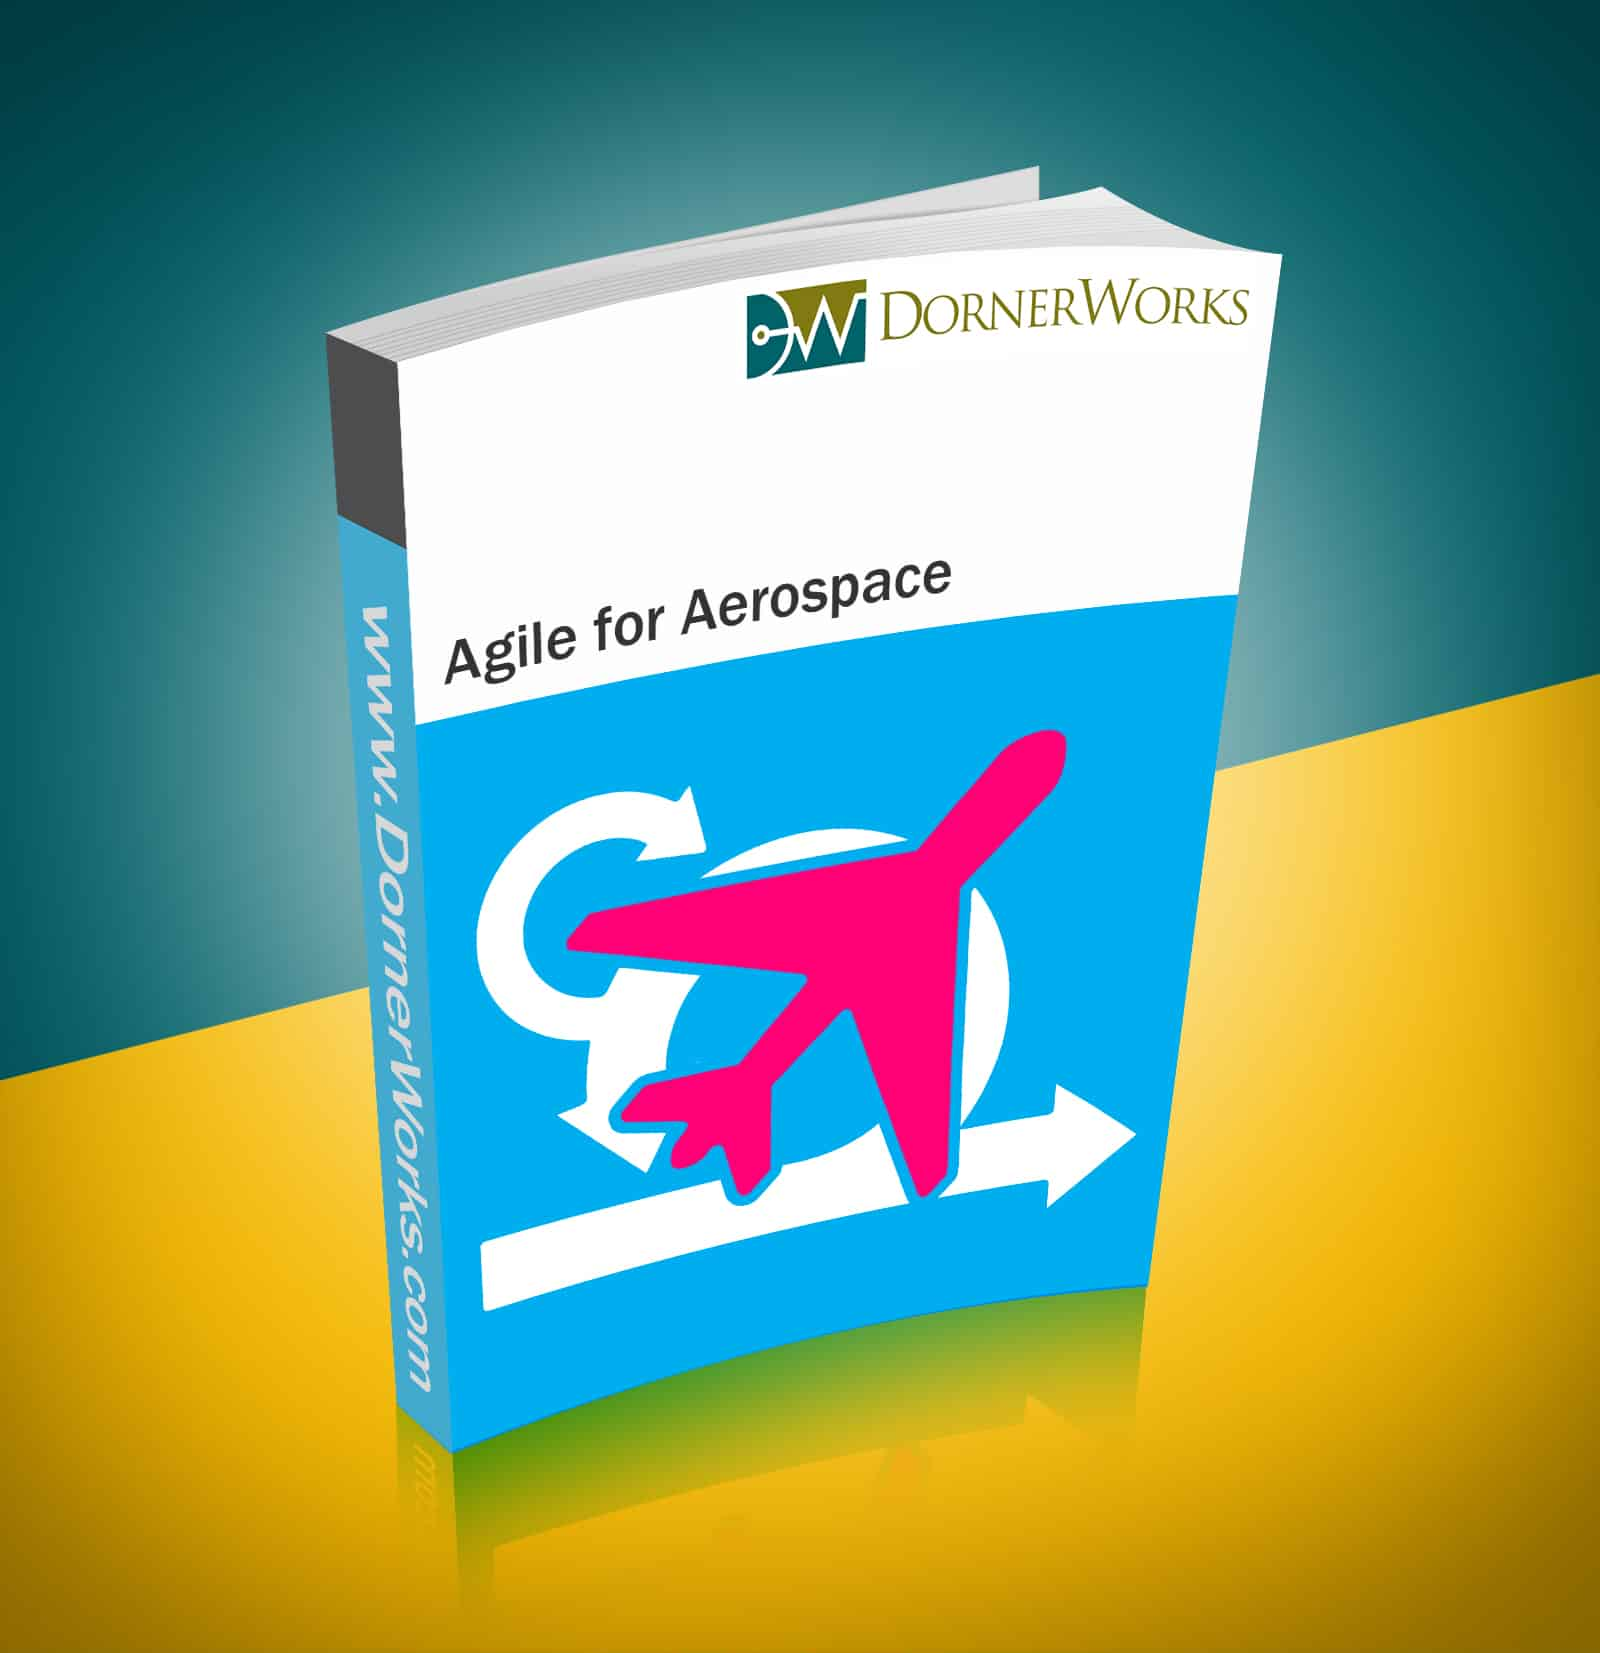 Agile for Aerospace